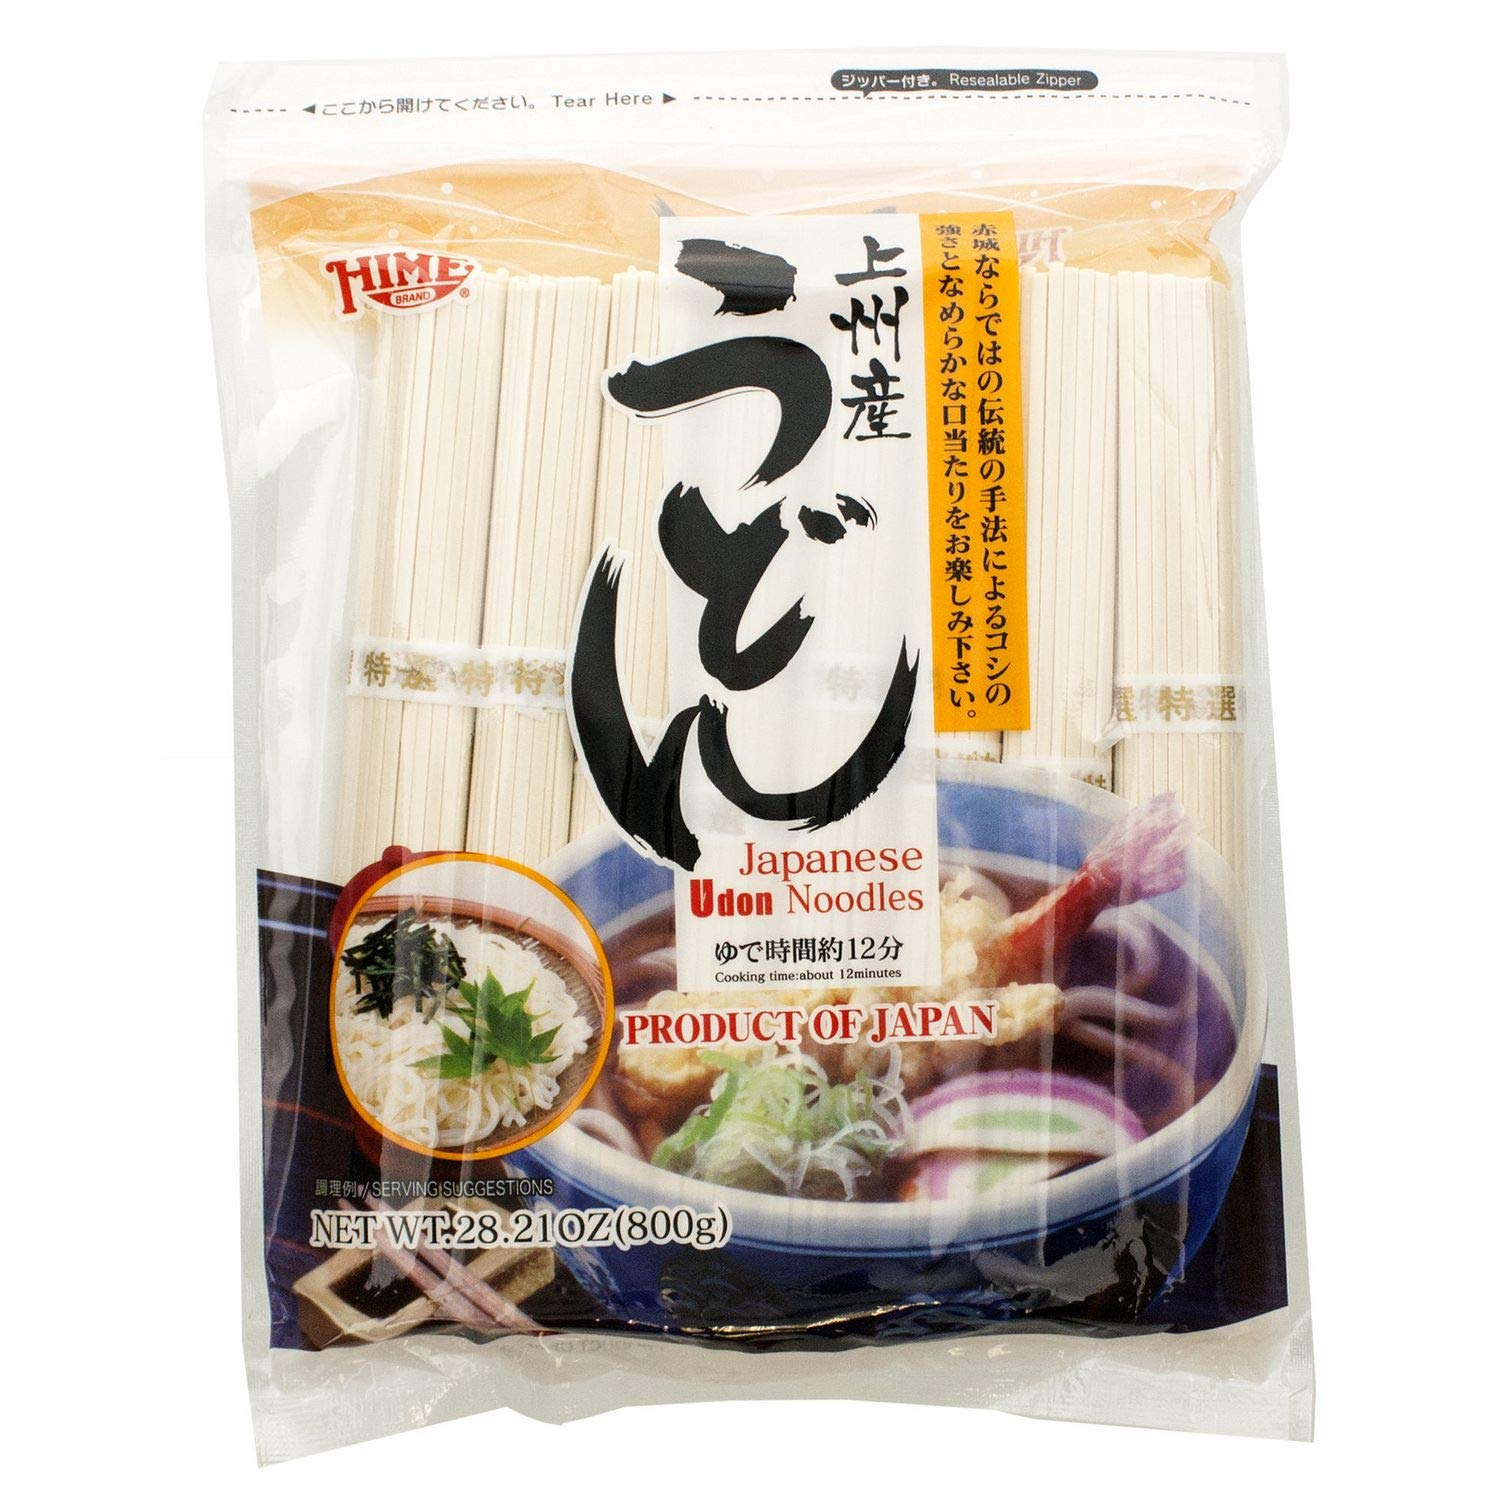 Hime Purchase Sales Dried Udon 28.21-Ounce Noodles